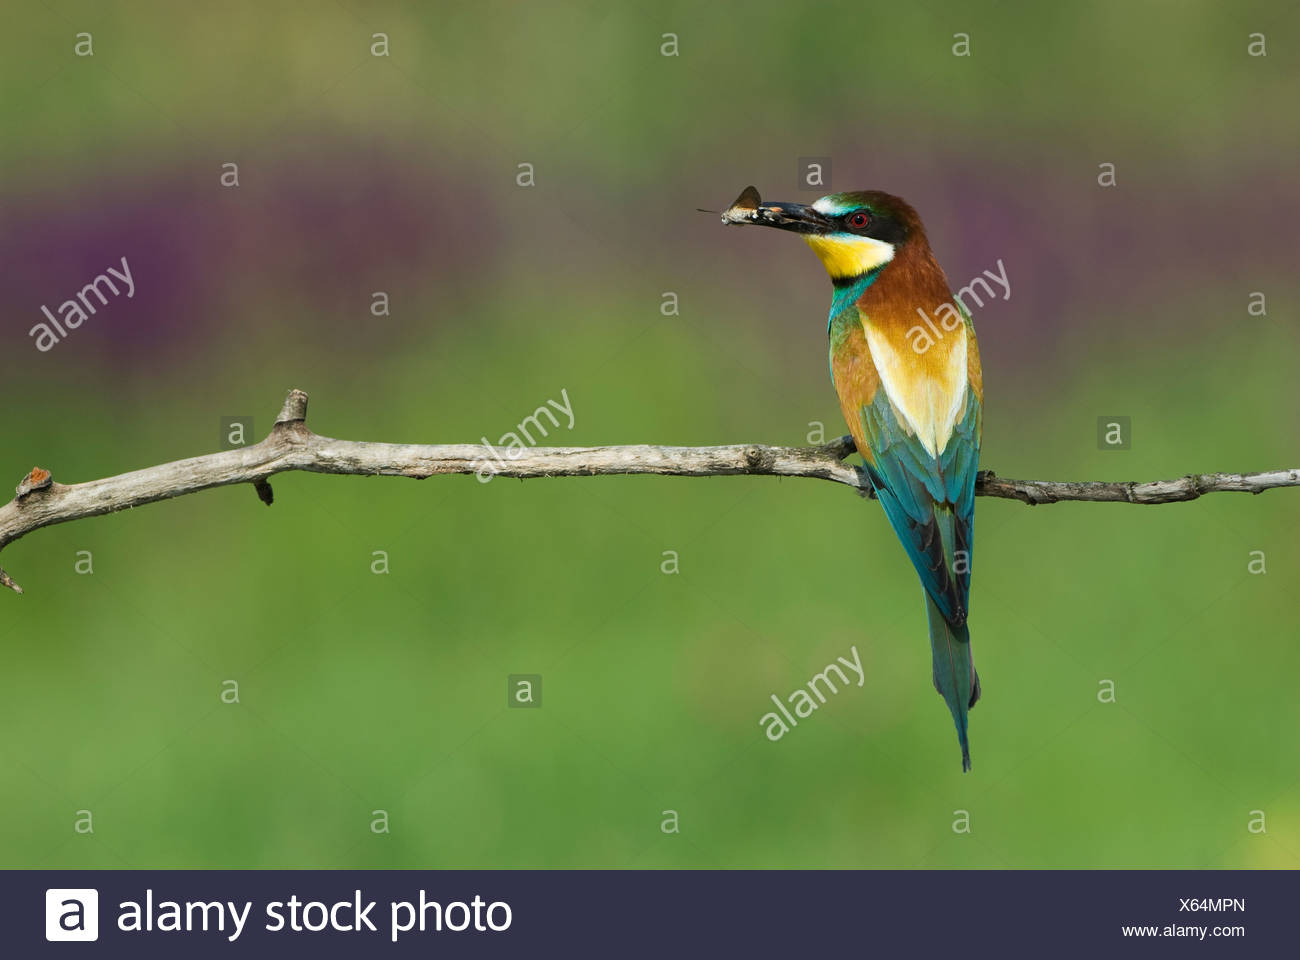 Europe, Hungary, F?geludden, View of European bee eater holding insect in mouth - Stock Image